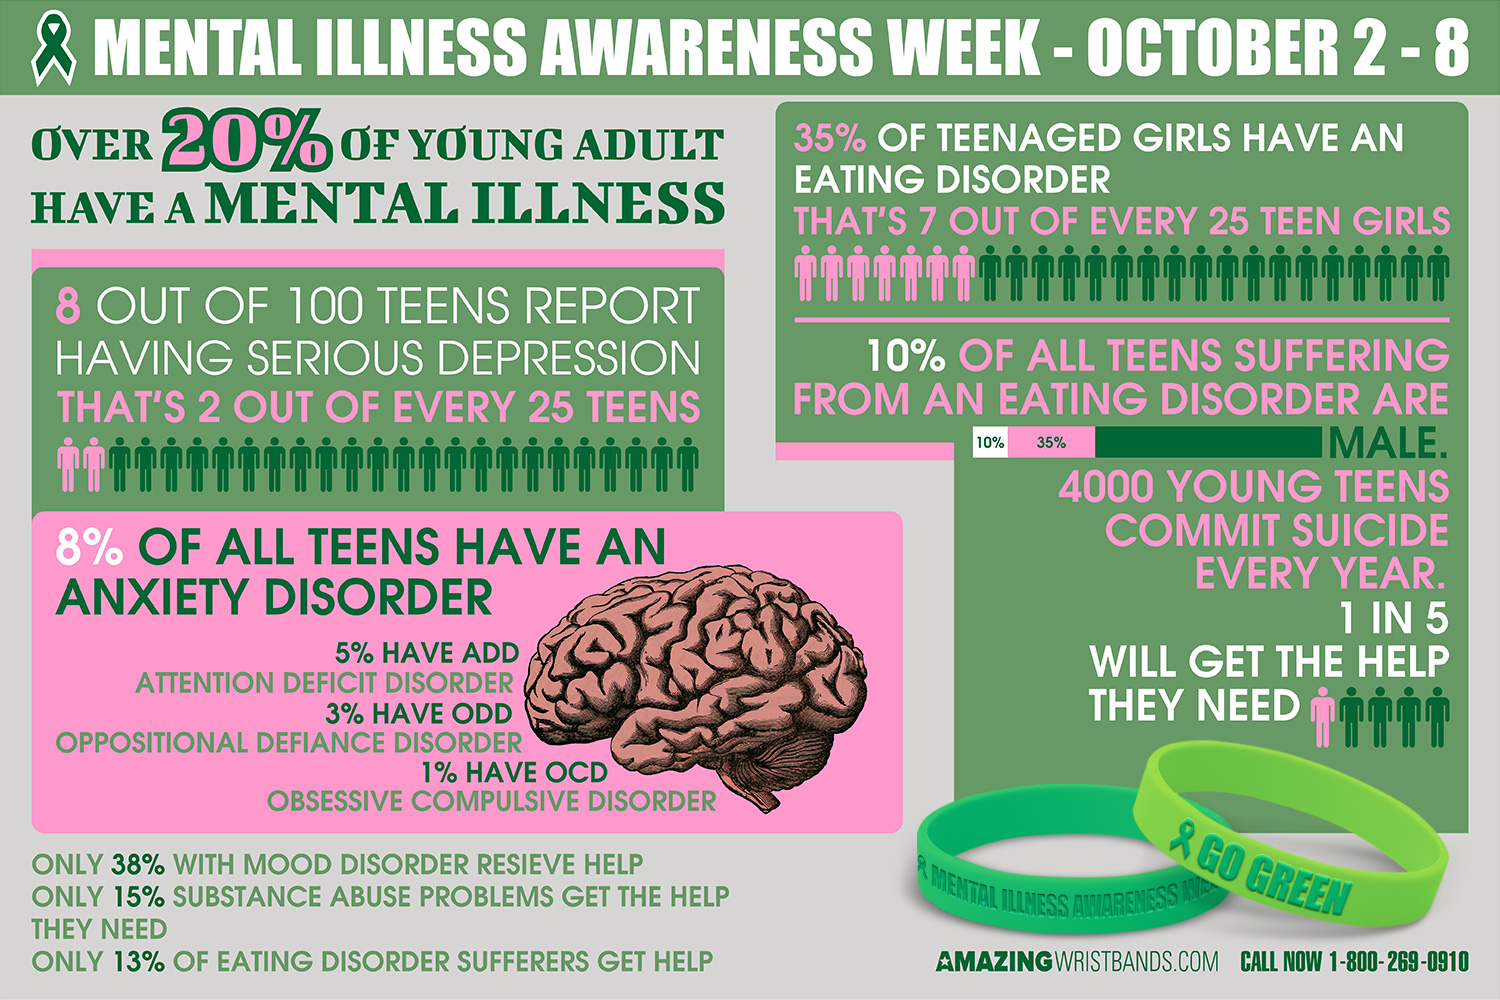 health mental utdailybeacon bracelet image article news awareness week com